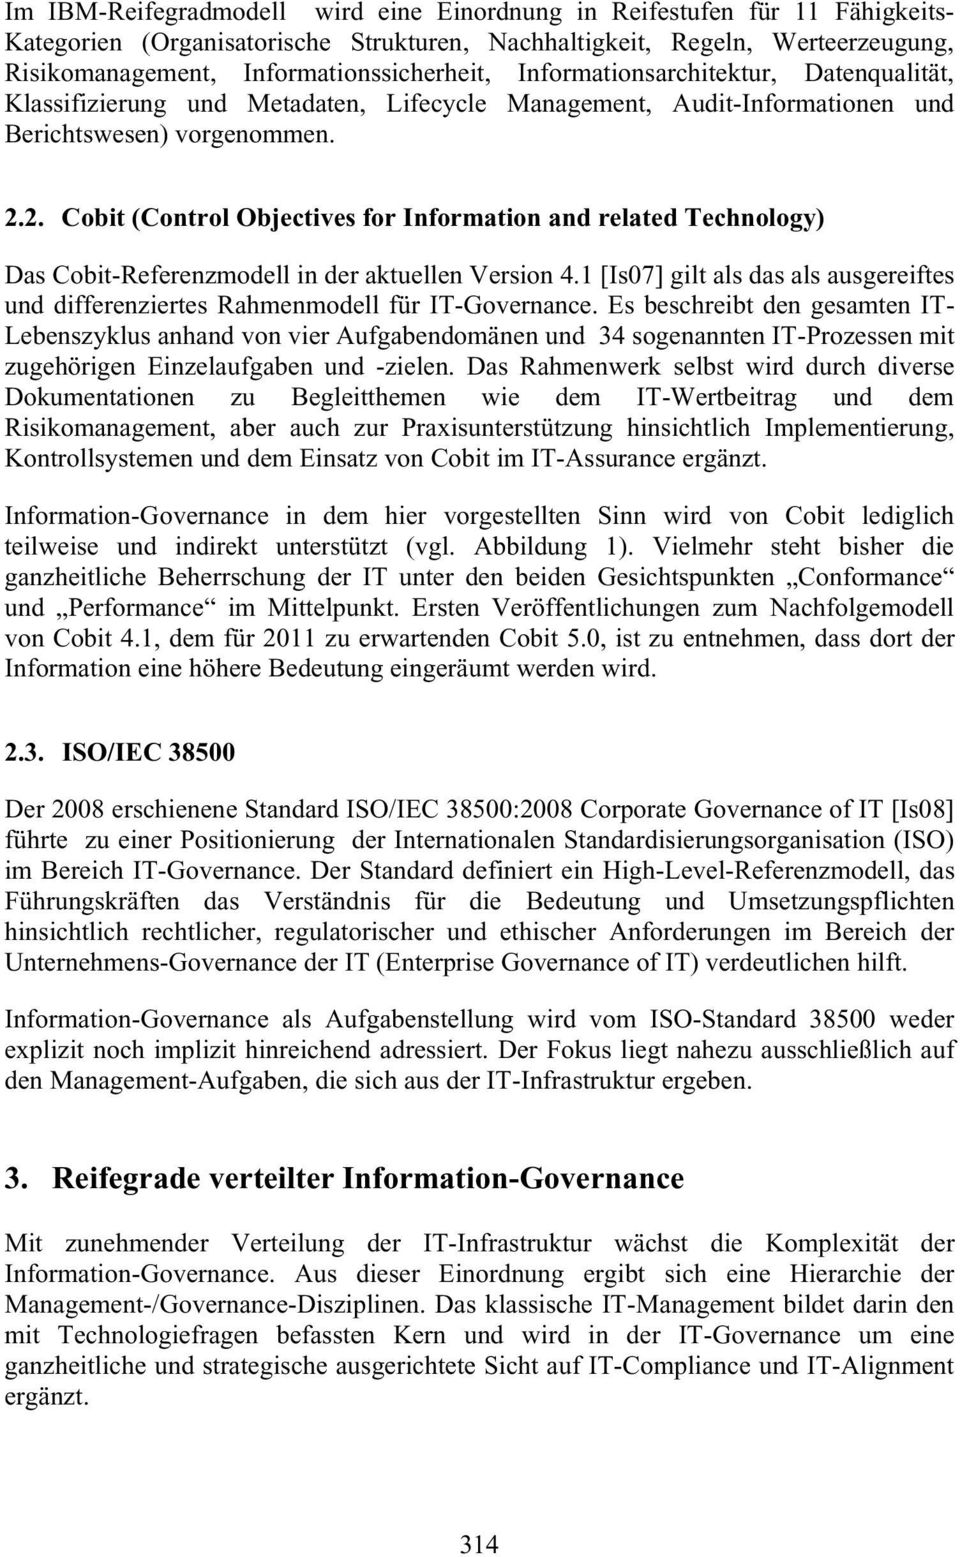 2. Cobit (Control Objectives for Information and related Technology) Das Cobit-Referenzmodell in der aktuellen Version 4.